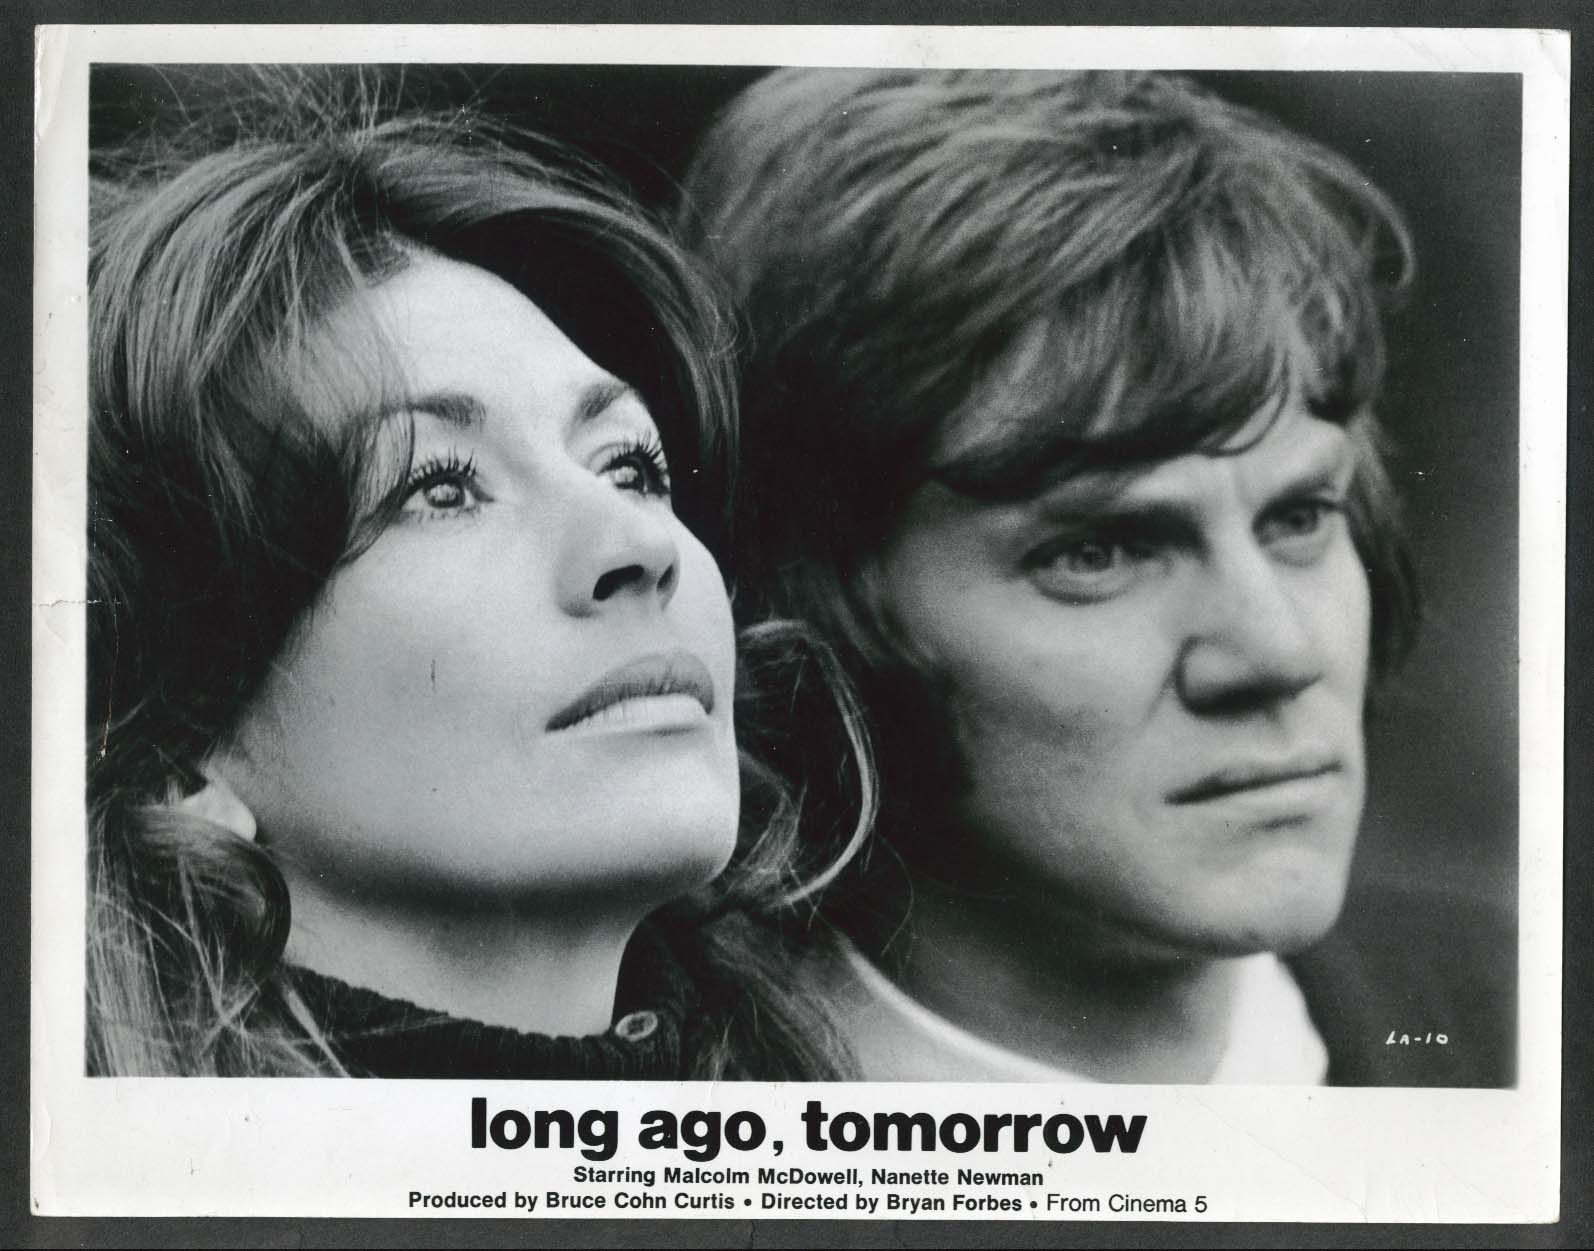 Image for Nanette Newman Malcolm McDowell Long Ago Tomorrow 8x10 photograph 1972